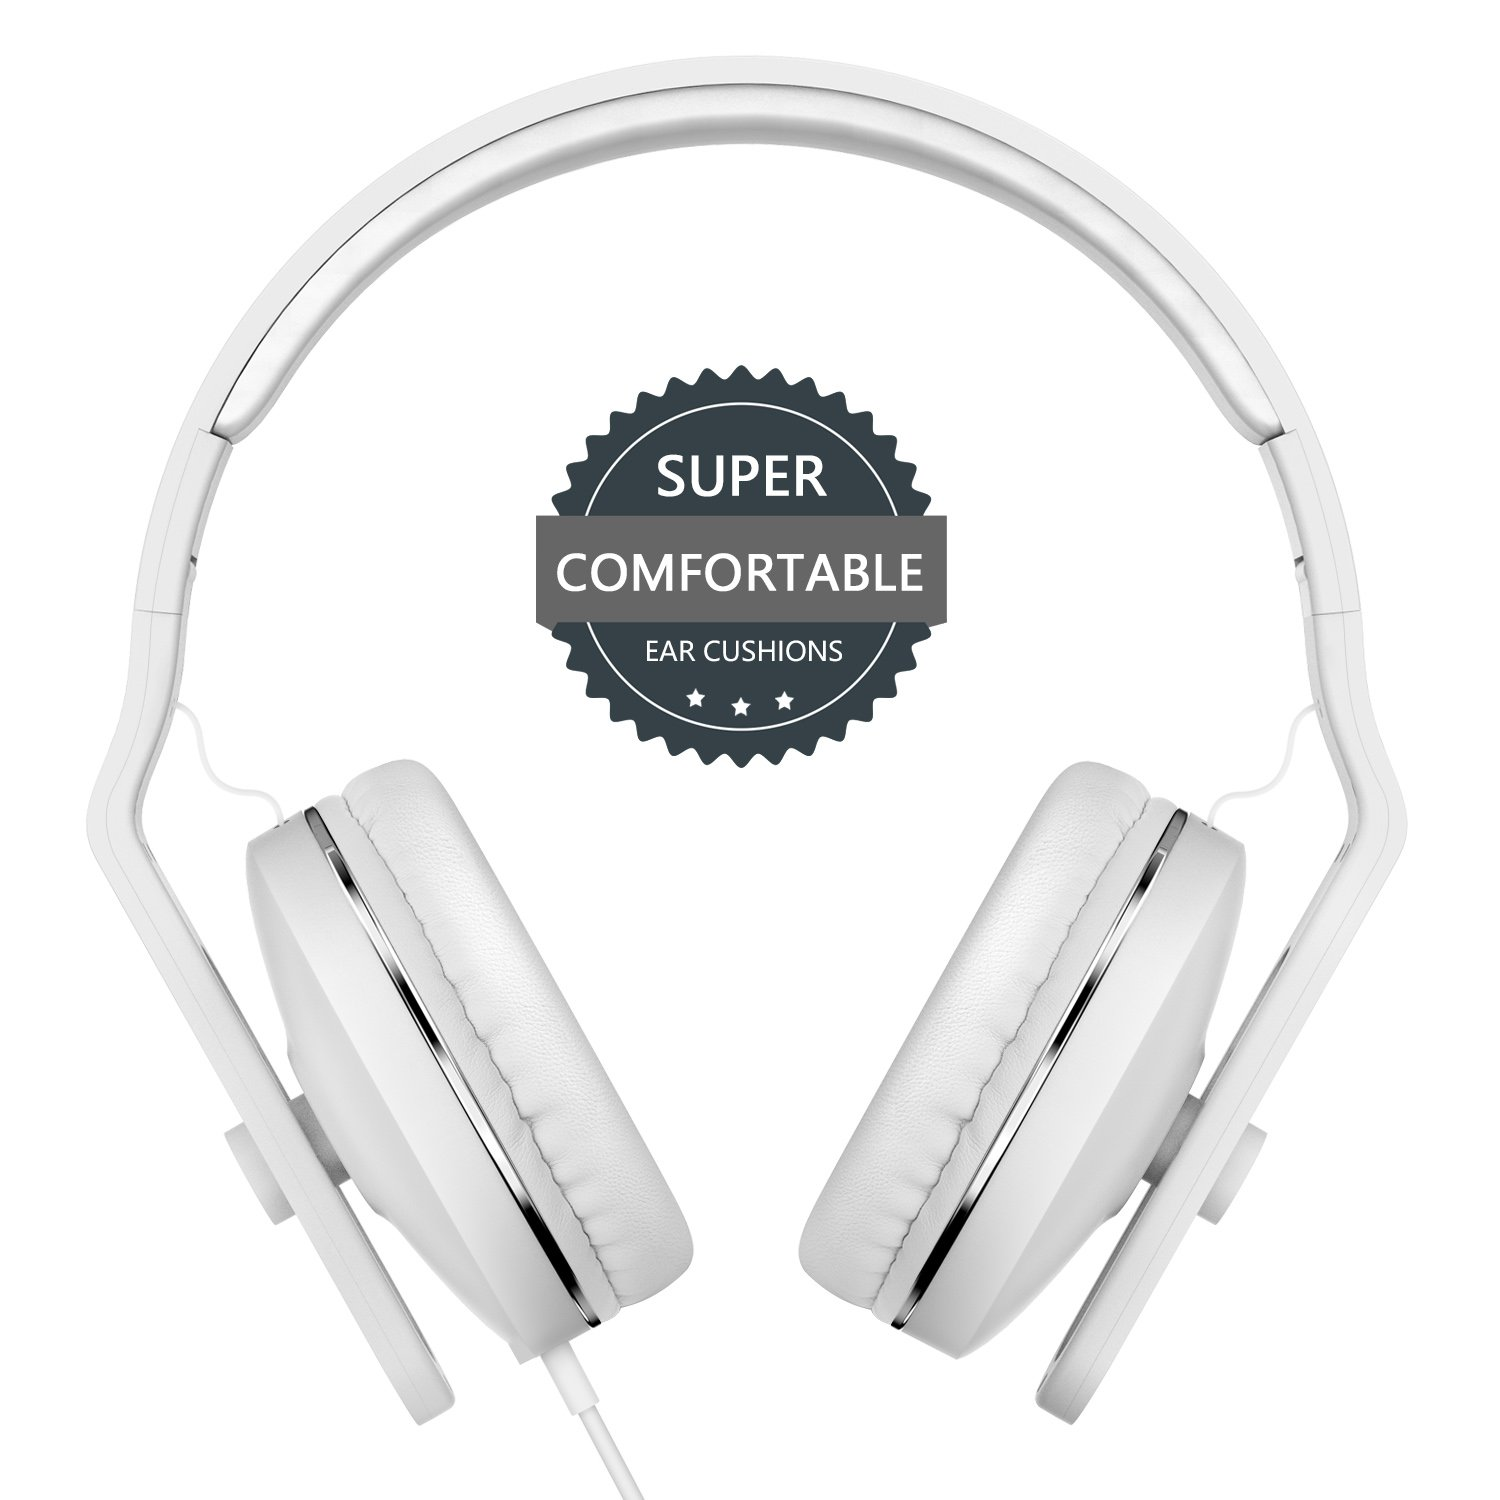 On Ear Headphones with Microphone - seenda Lightweight & Foldable Wired Headphones with Volume Control for iPhone Samsung Smartphones, Tablets, Laptops, PC and More by seenda